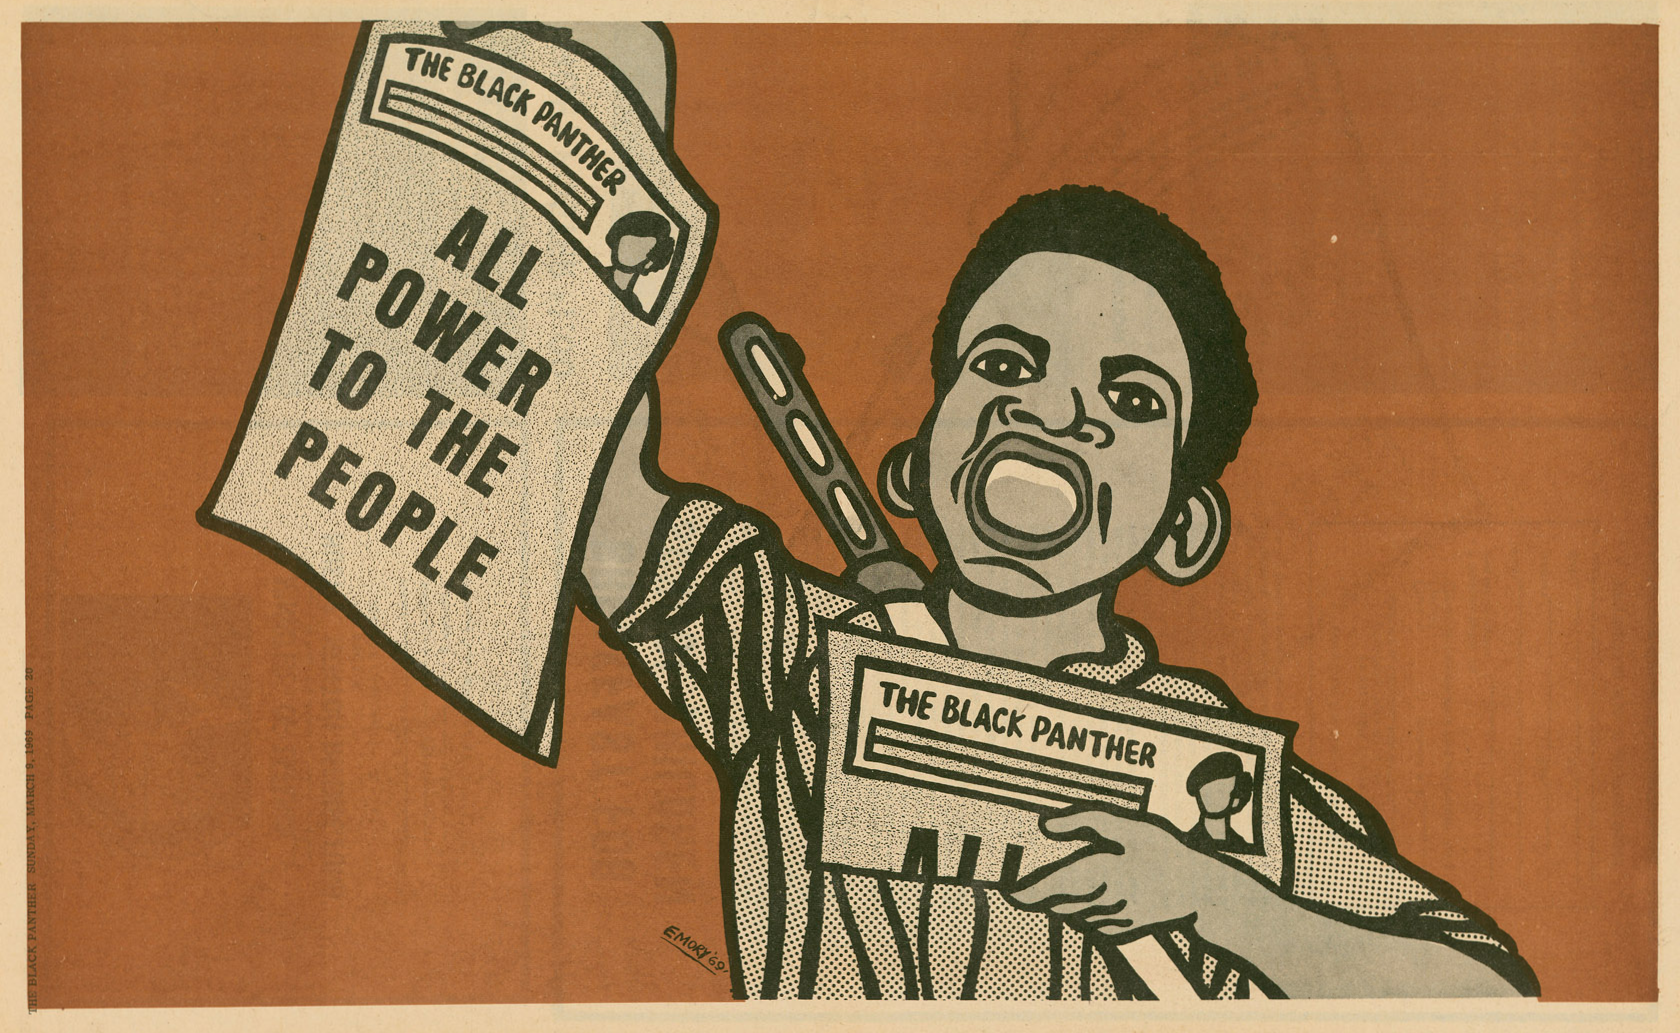 the contribution of the black panther party in the art of propaganda